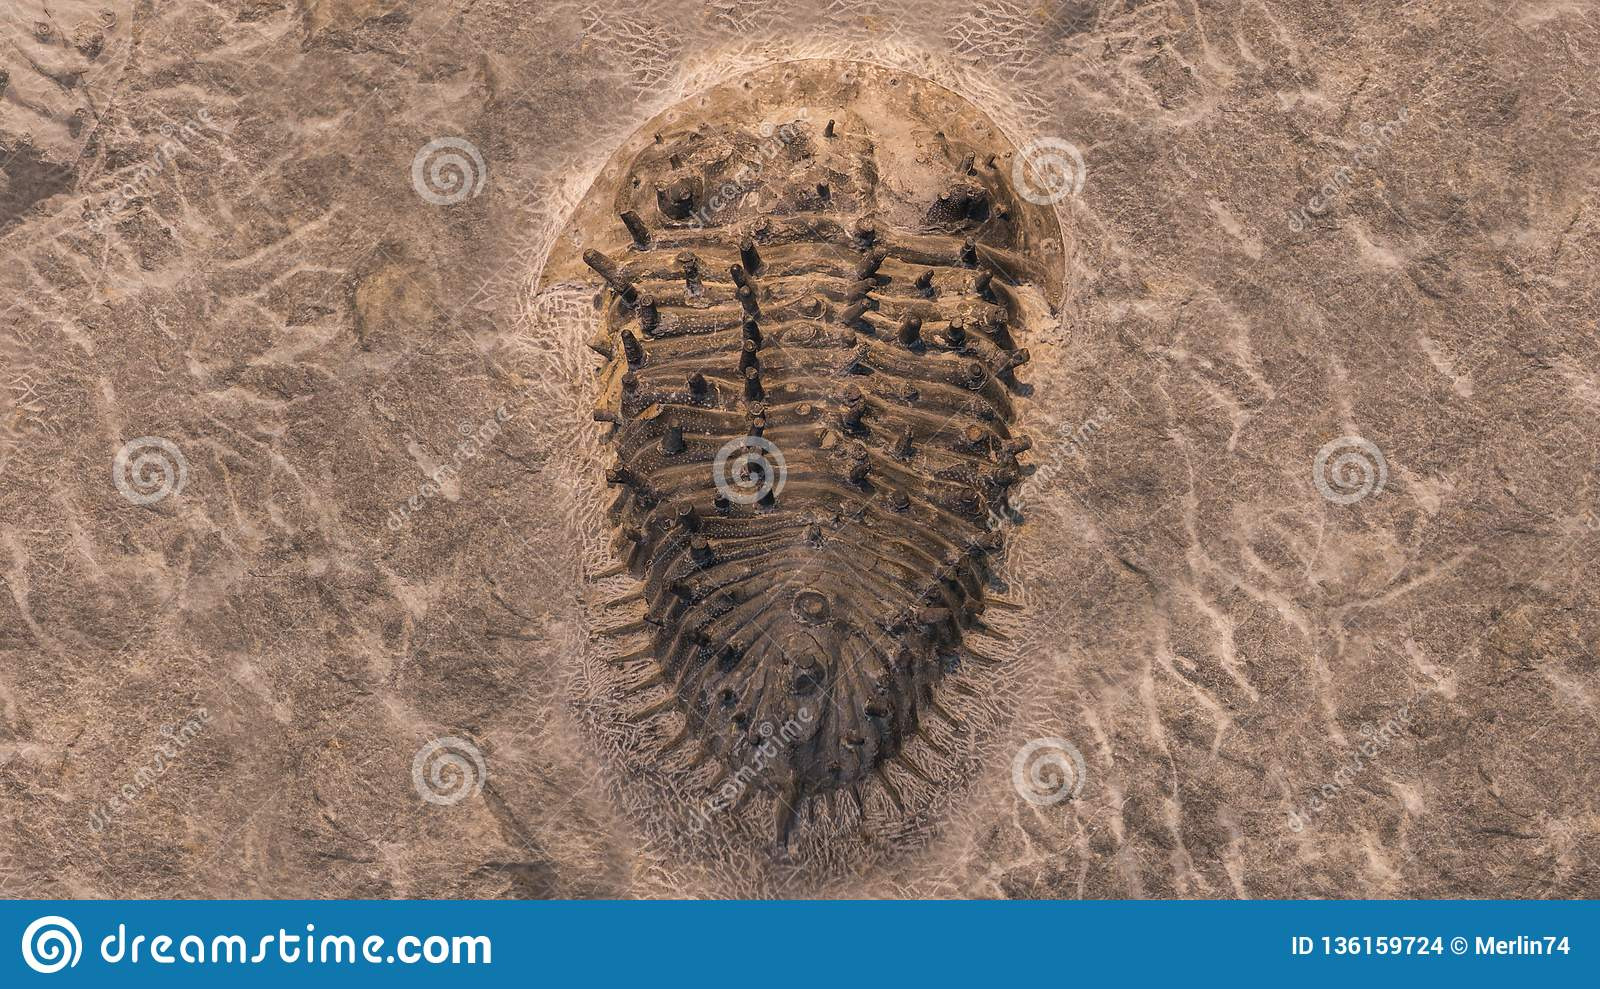 Fossil Trilobites Imprinted In The Sediment  4 Billion Year